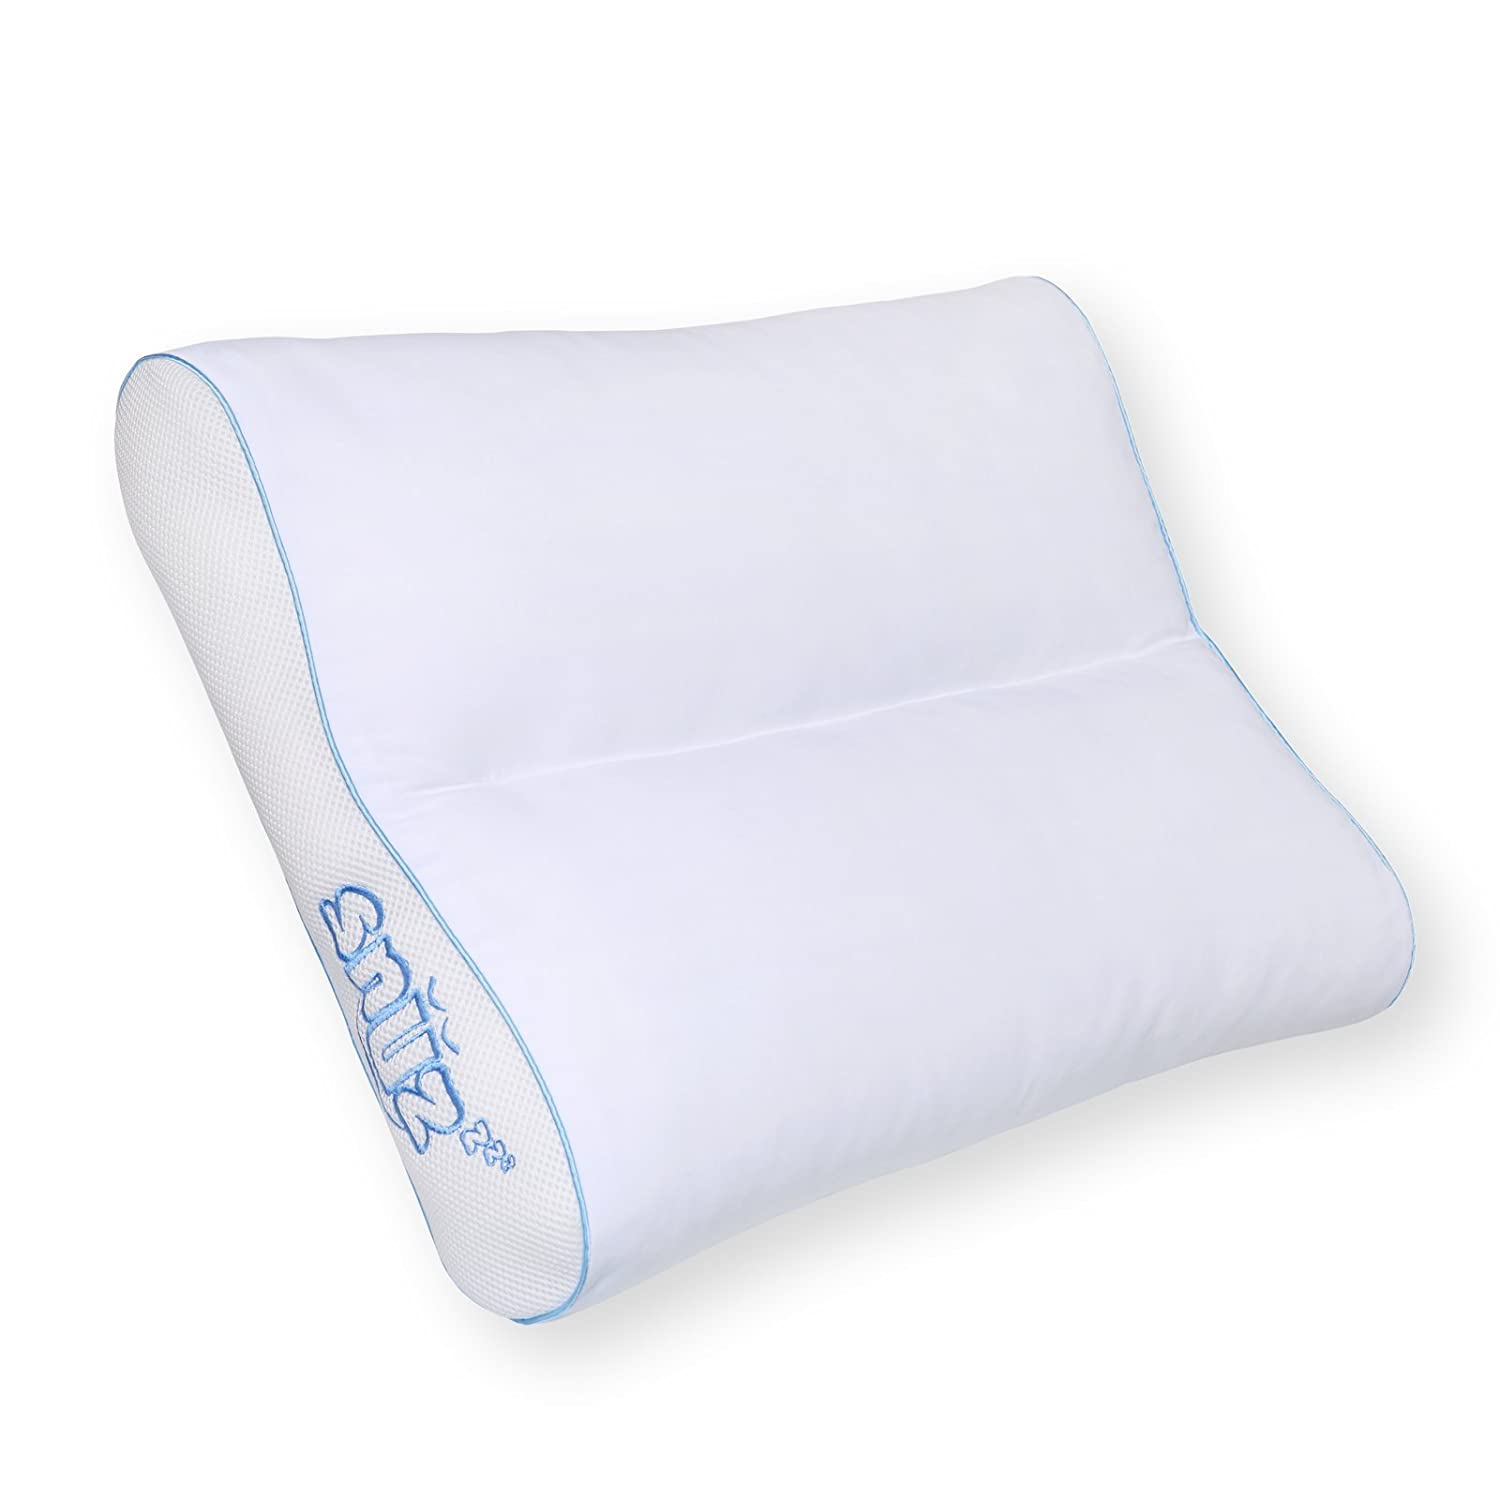 The SNÜZ Pillow. More Comfortable. Better Sleep